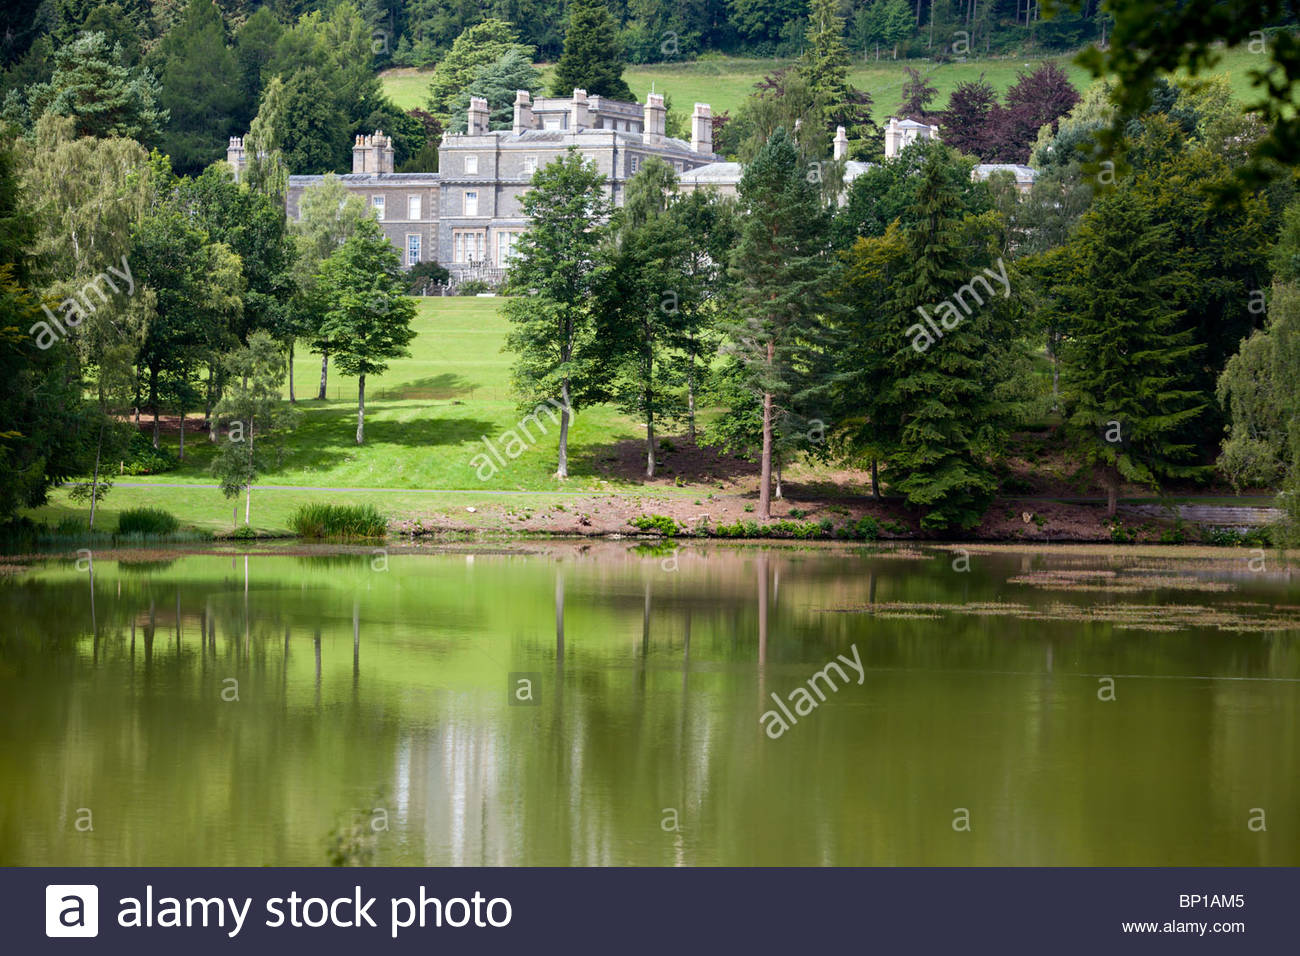 Bowhill The Borders and the Southwest, Bowhill House on the Bowhill Estate in the Scottish Borders Stock ...